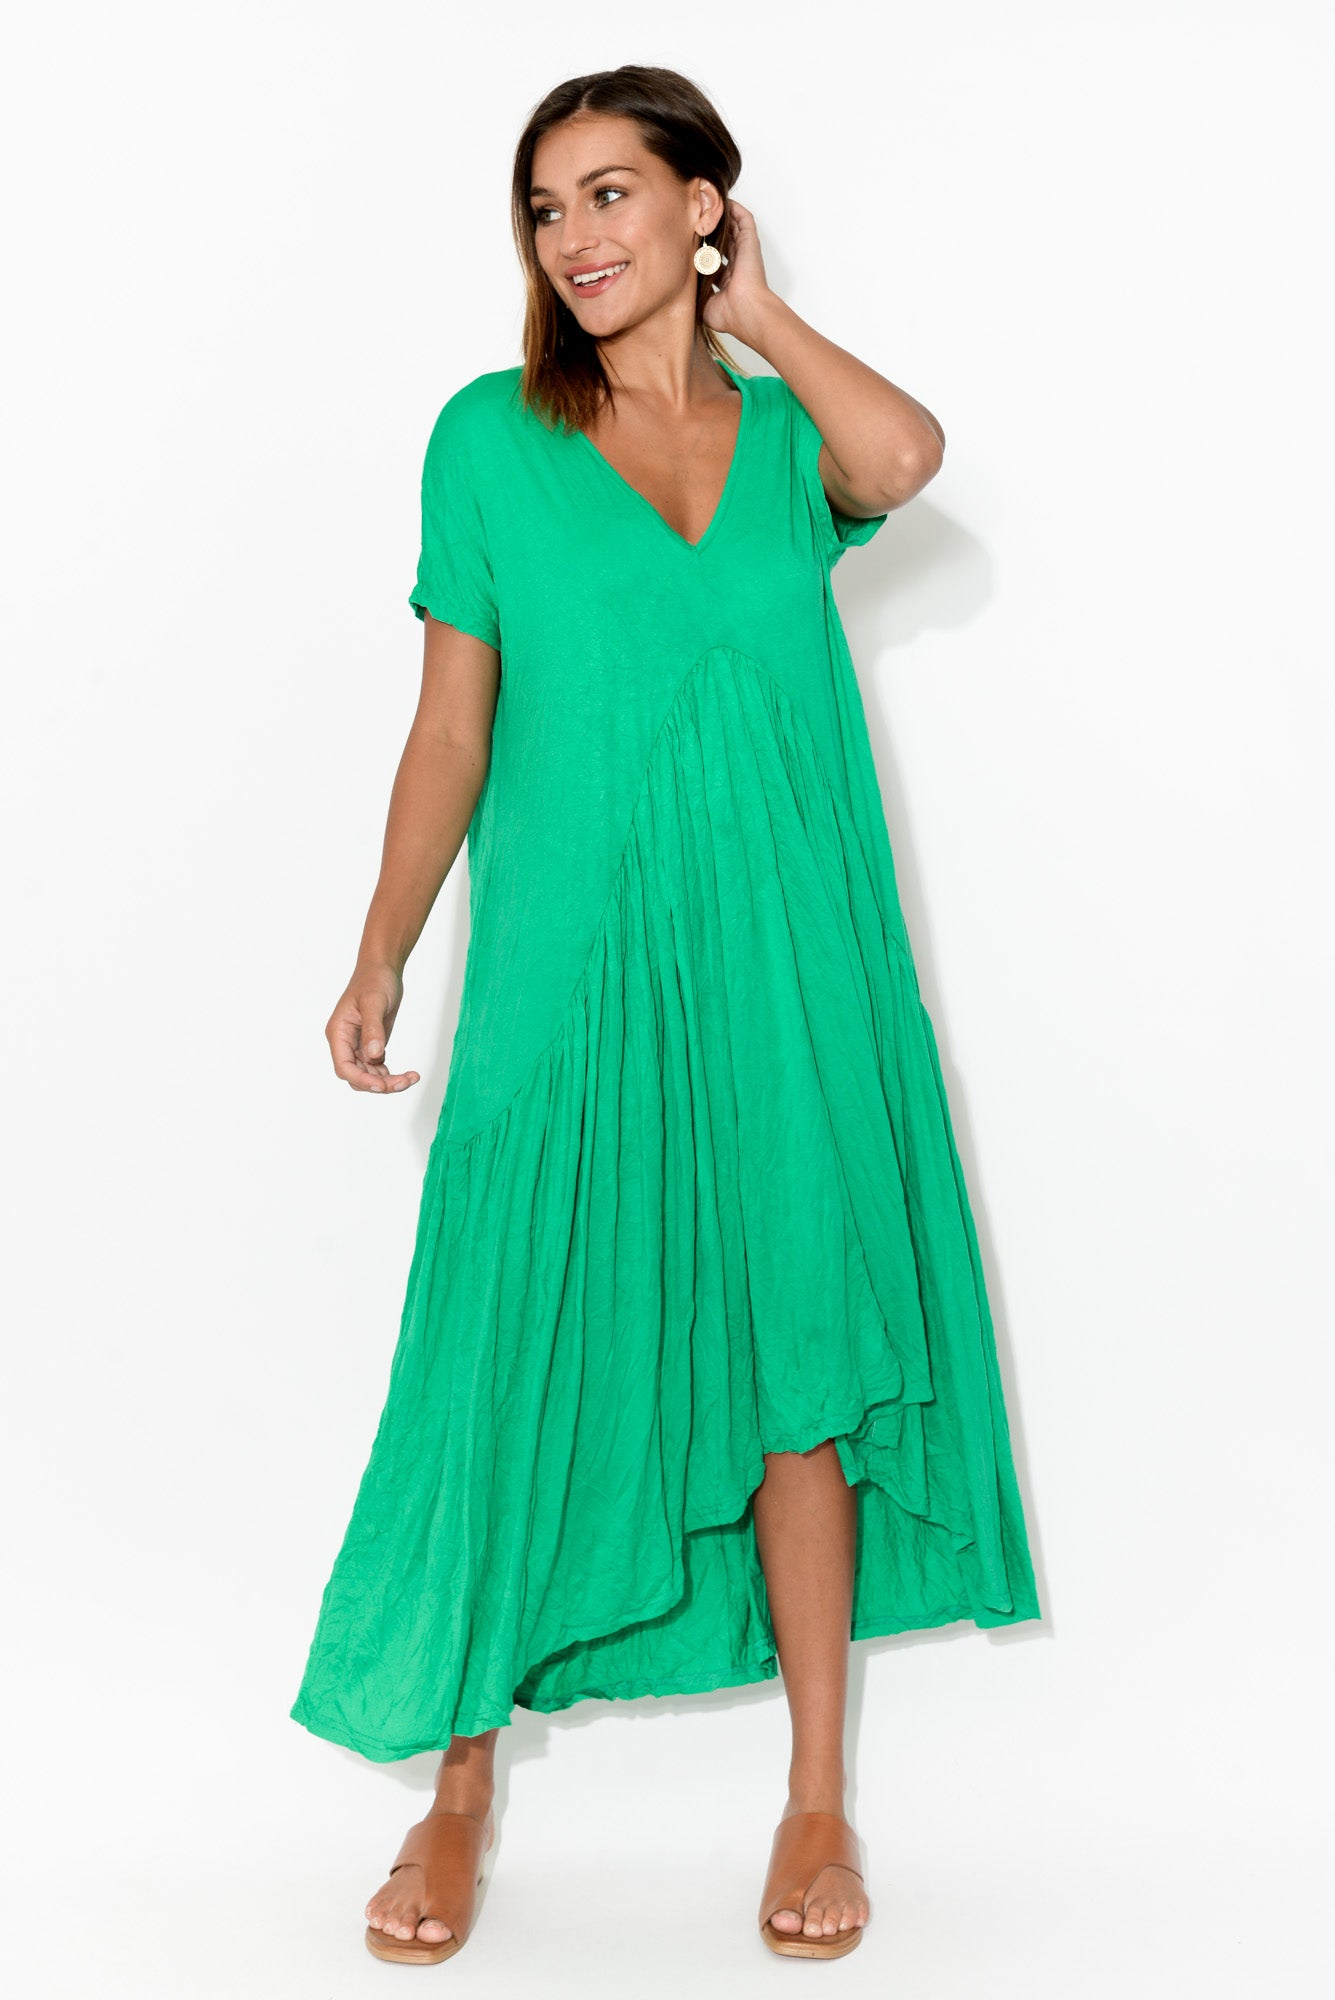 Green Crinkle Cotton Gather Dress